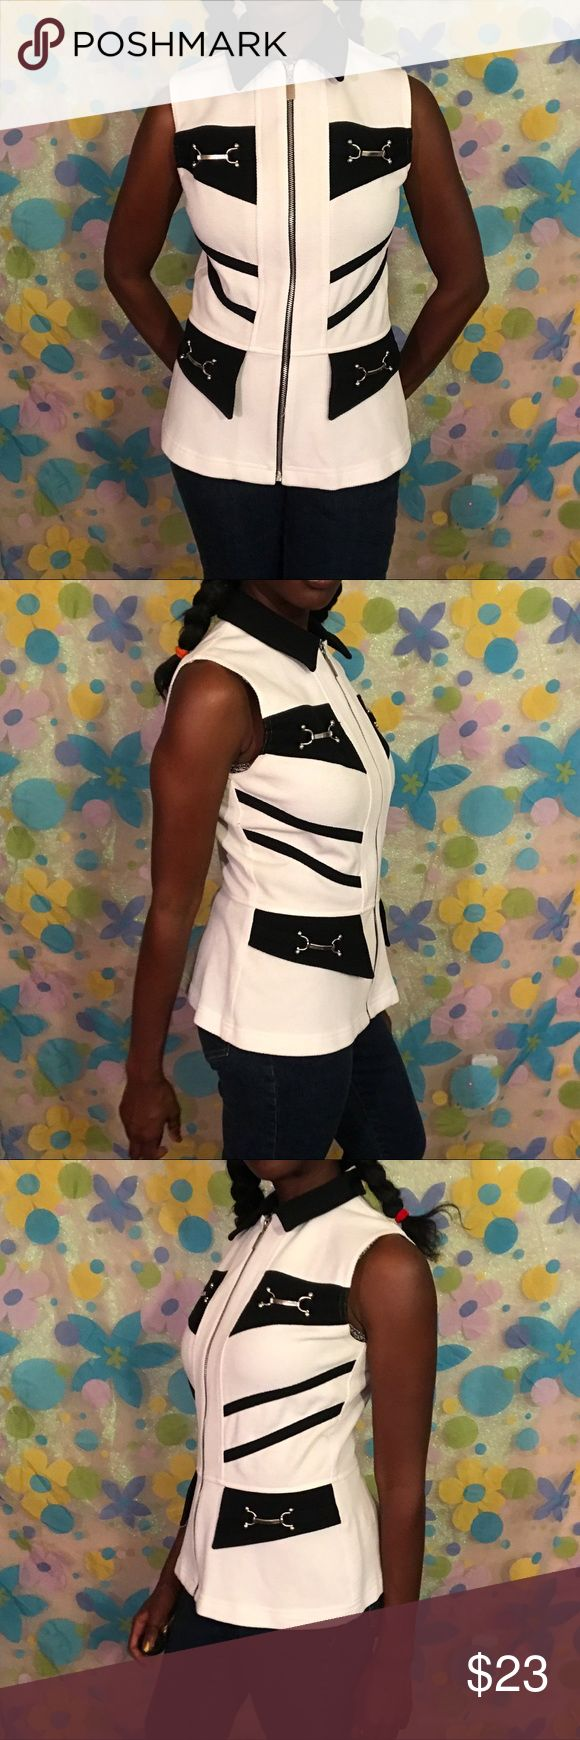 PG collections zip up to 8 stretchy I love this black and white zip up top. Size 8. Fits small and a bit stretchy. No pockets. 🤷🏿♀️ DM TO PURCHASE!! #pgcollection #gingerbort #top #blouse #sleeveless #zipup #halloween #vintage #retro #fun #party #stretchy #8 #womensfashion #womenswear #womensclothing #forsale #depop #posh #ebay #vinted #thrift #smallbusiness #blackowned #luxury #expensive #blackgirlmagic Tops Blouses